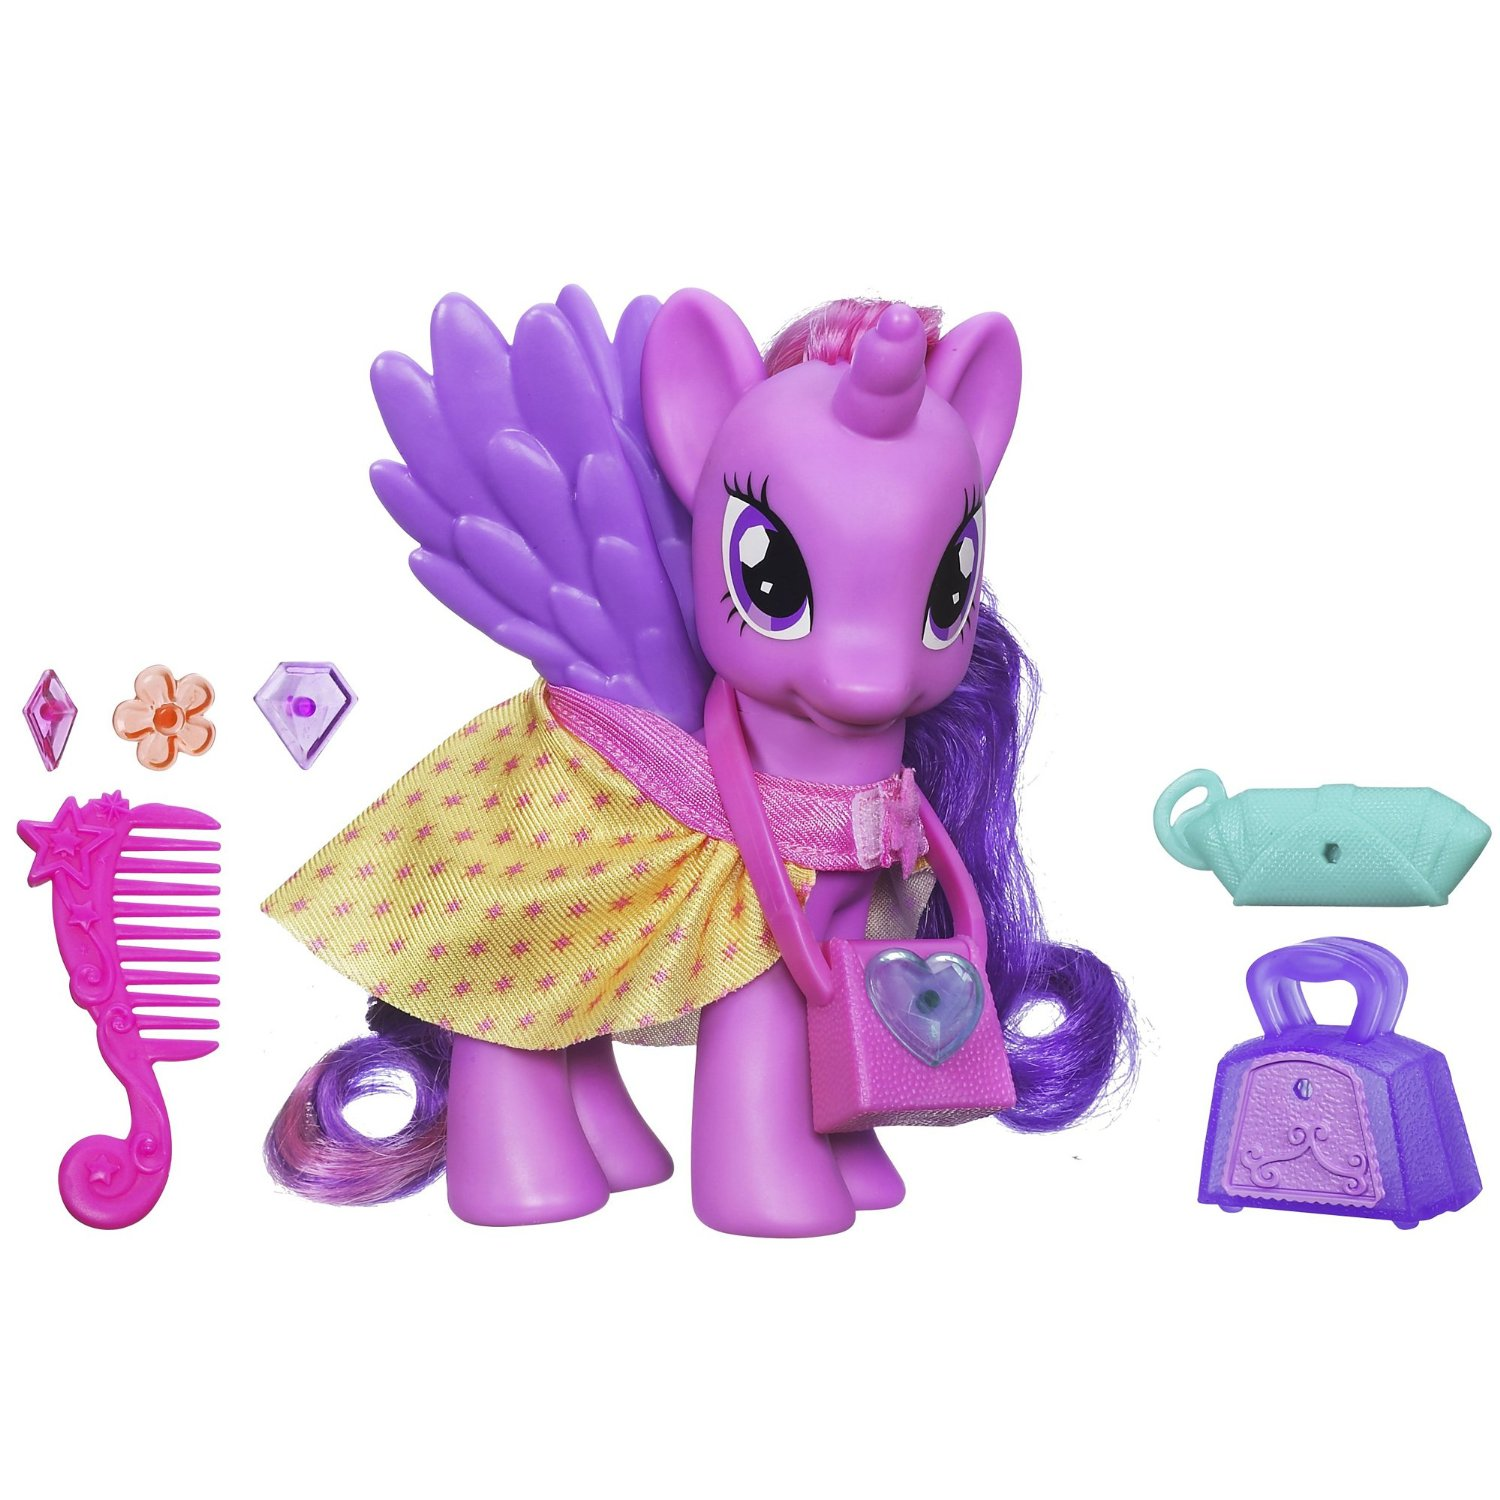 My Little Pony Toys : My little pony toys fashion style princess twilight